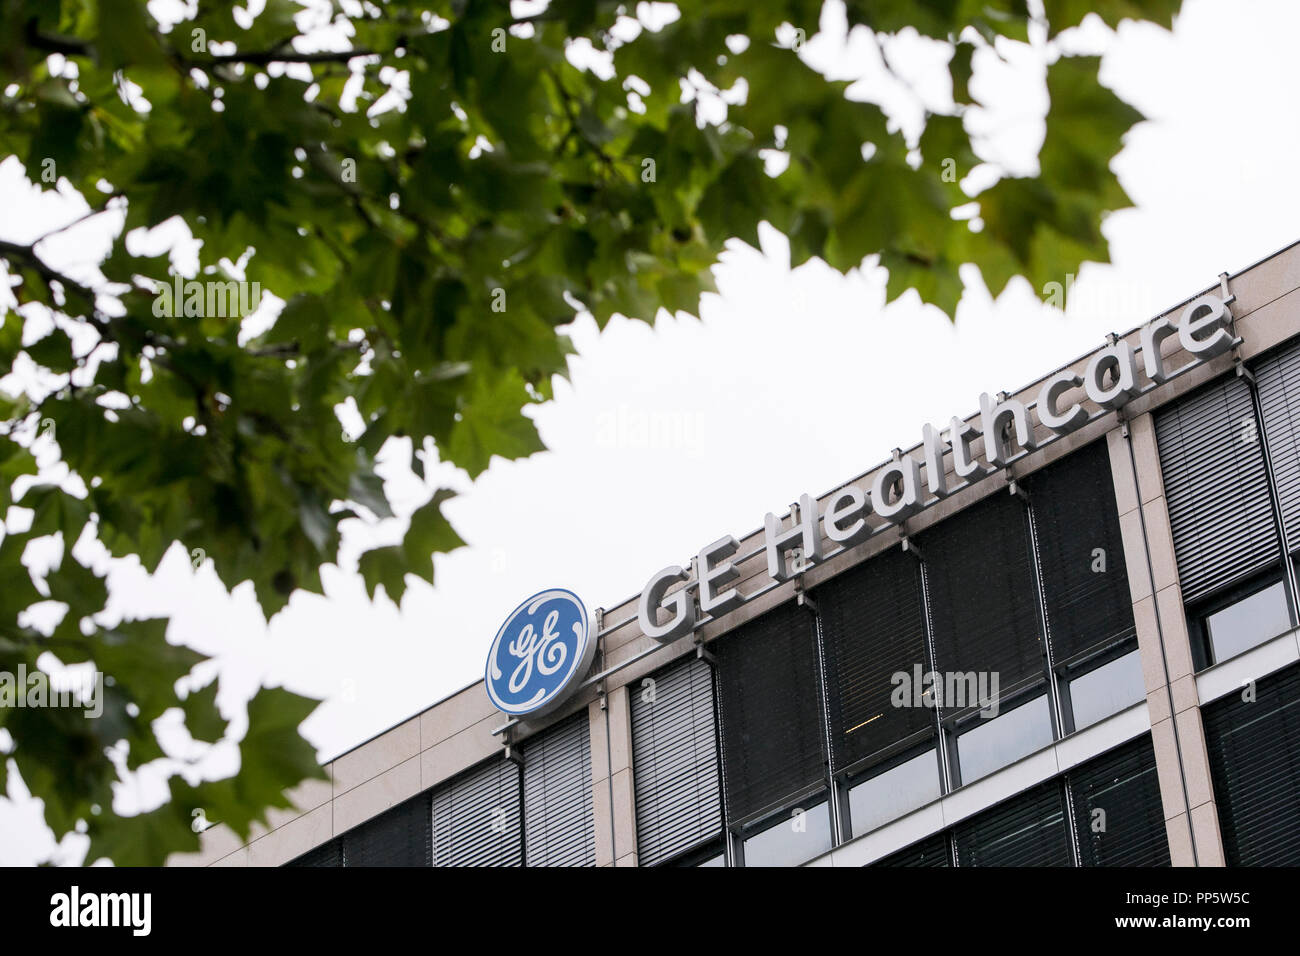 Ge Healthcare Stock Photos & Ge Healthcare Stock Images - Alamy